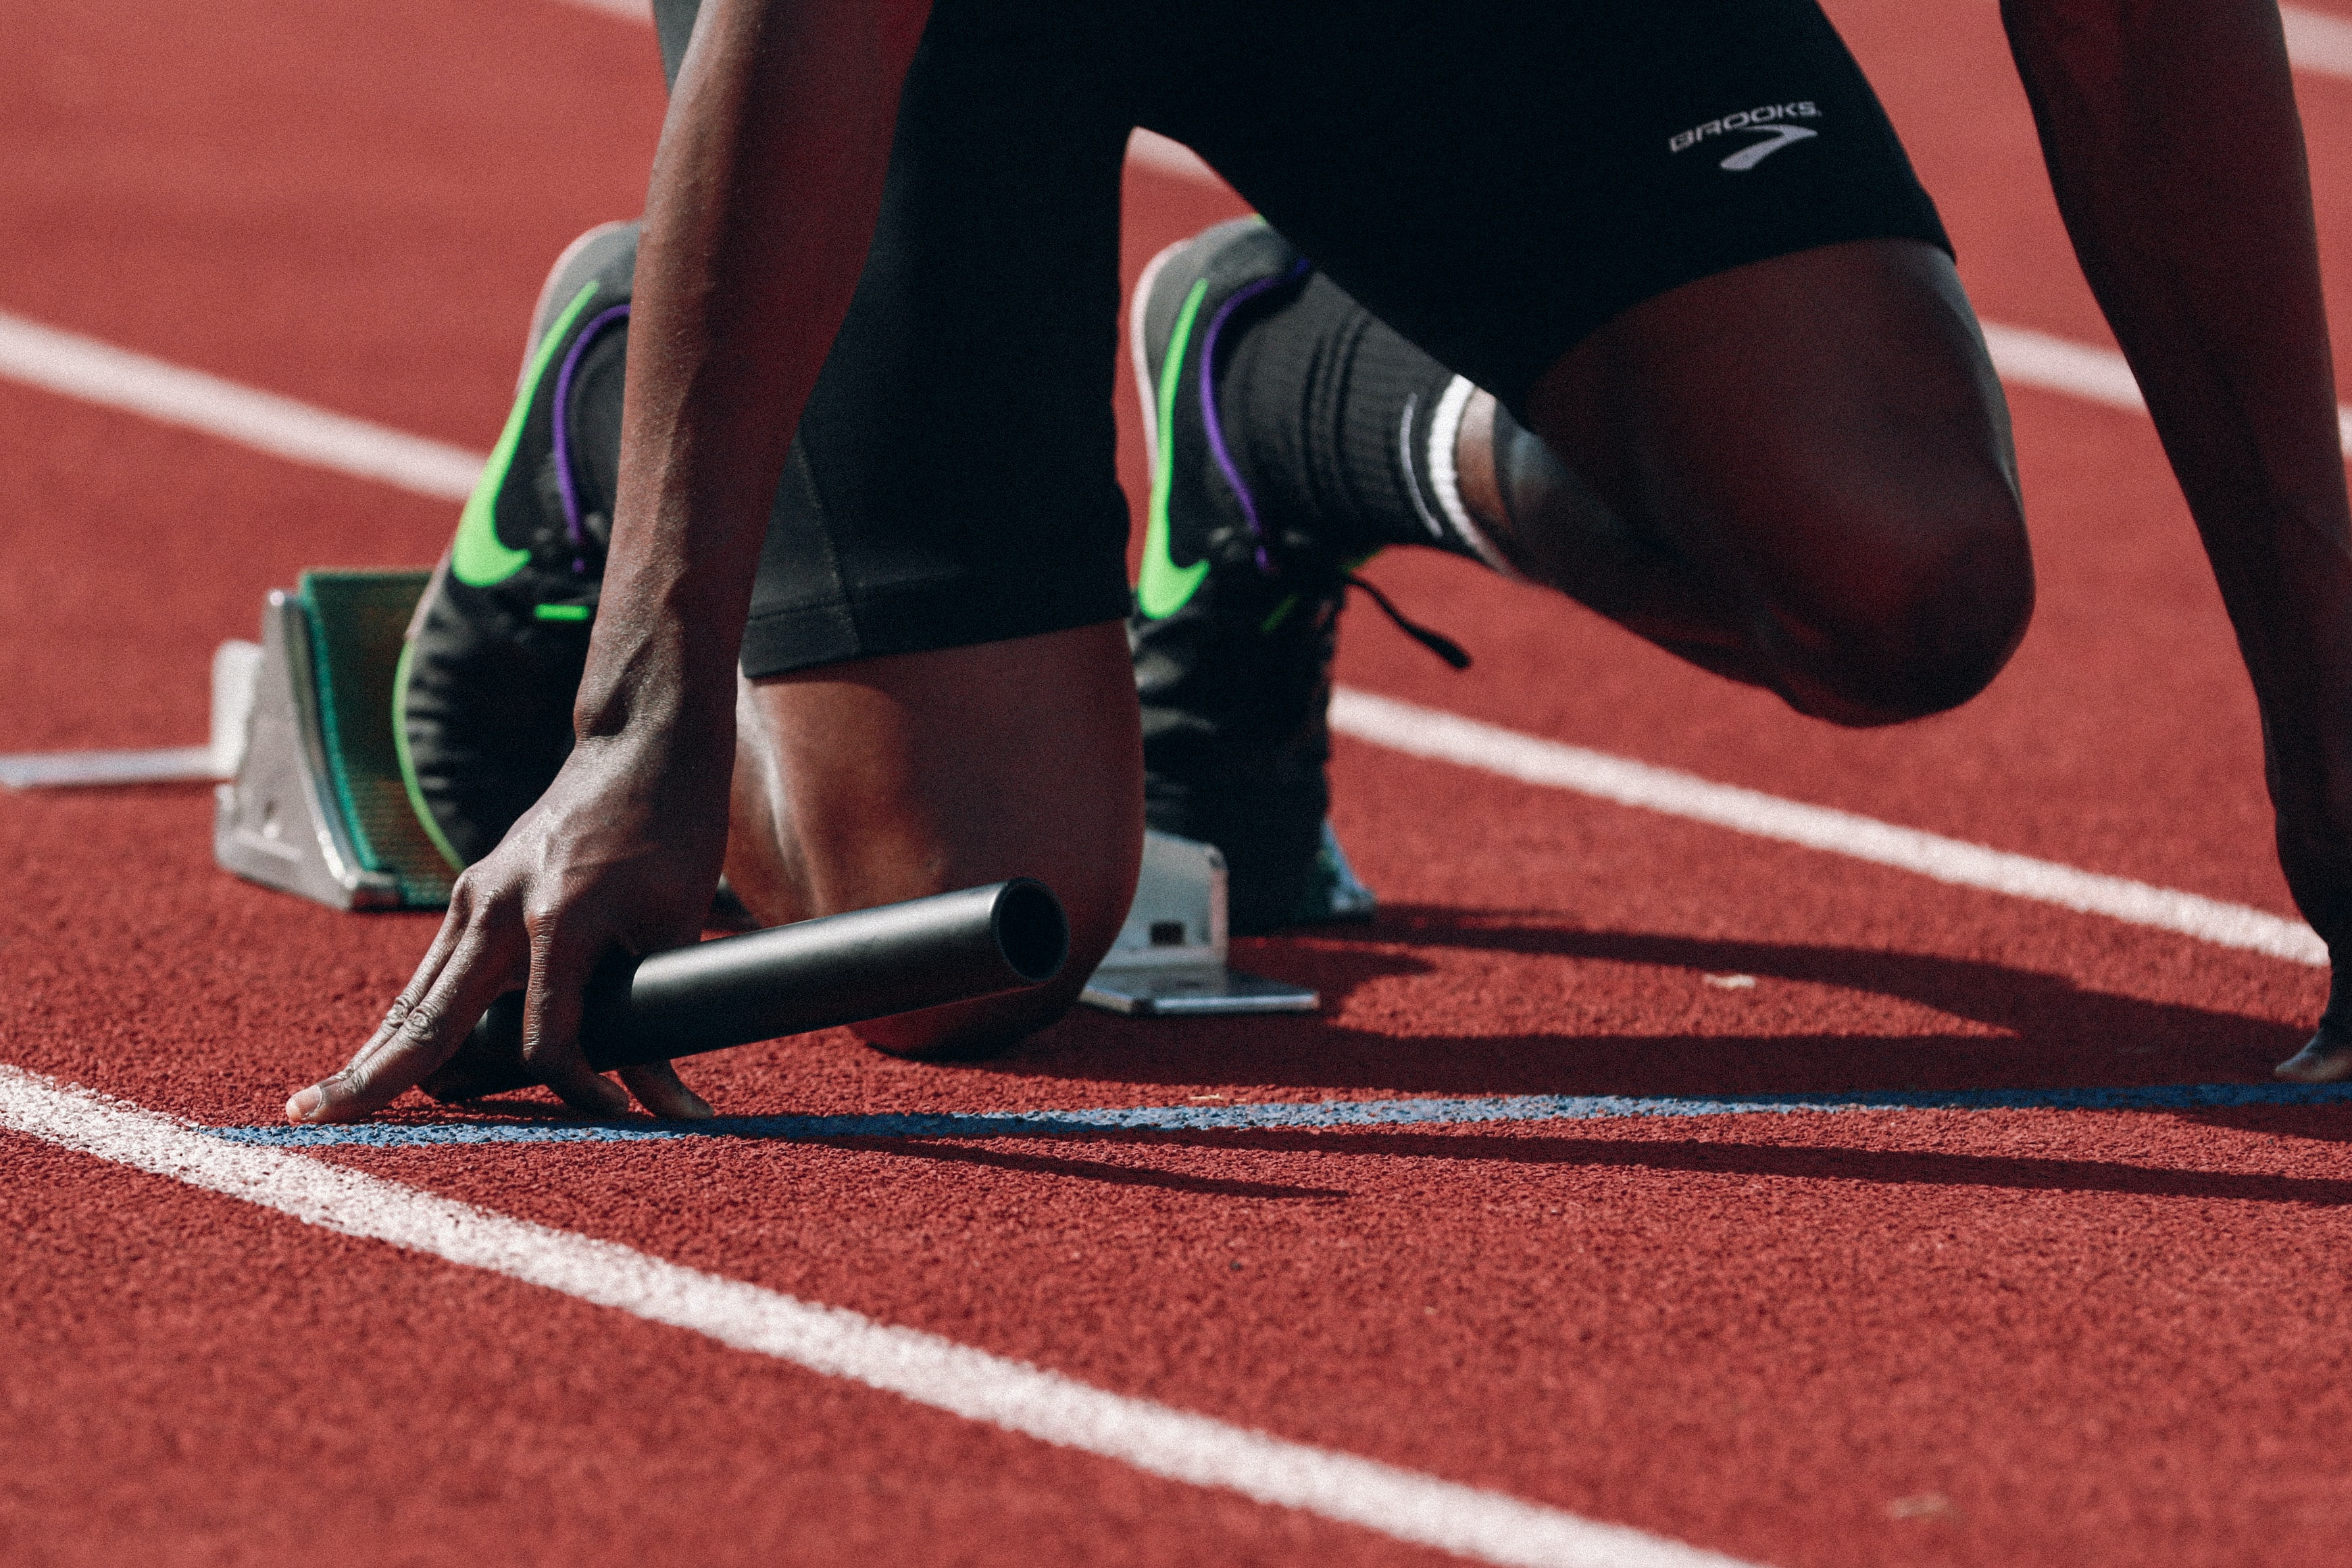 Sprinting at work: a formula for outperformance